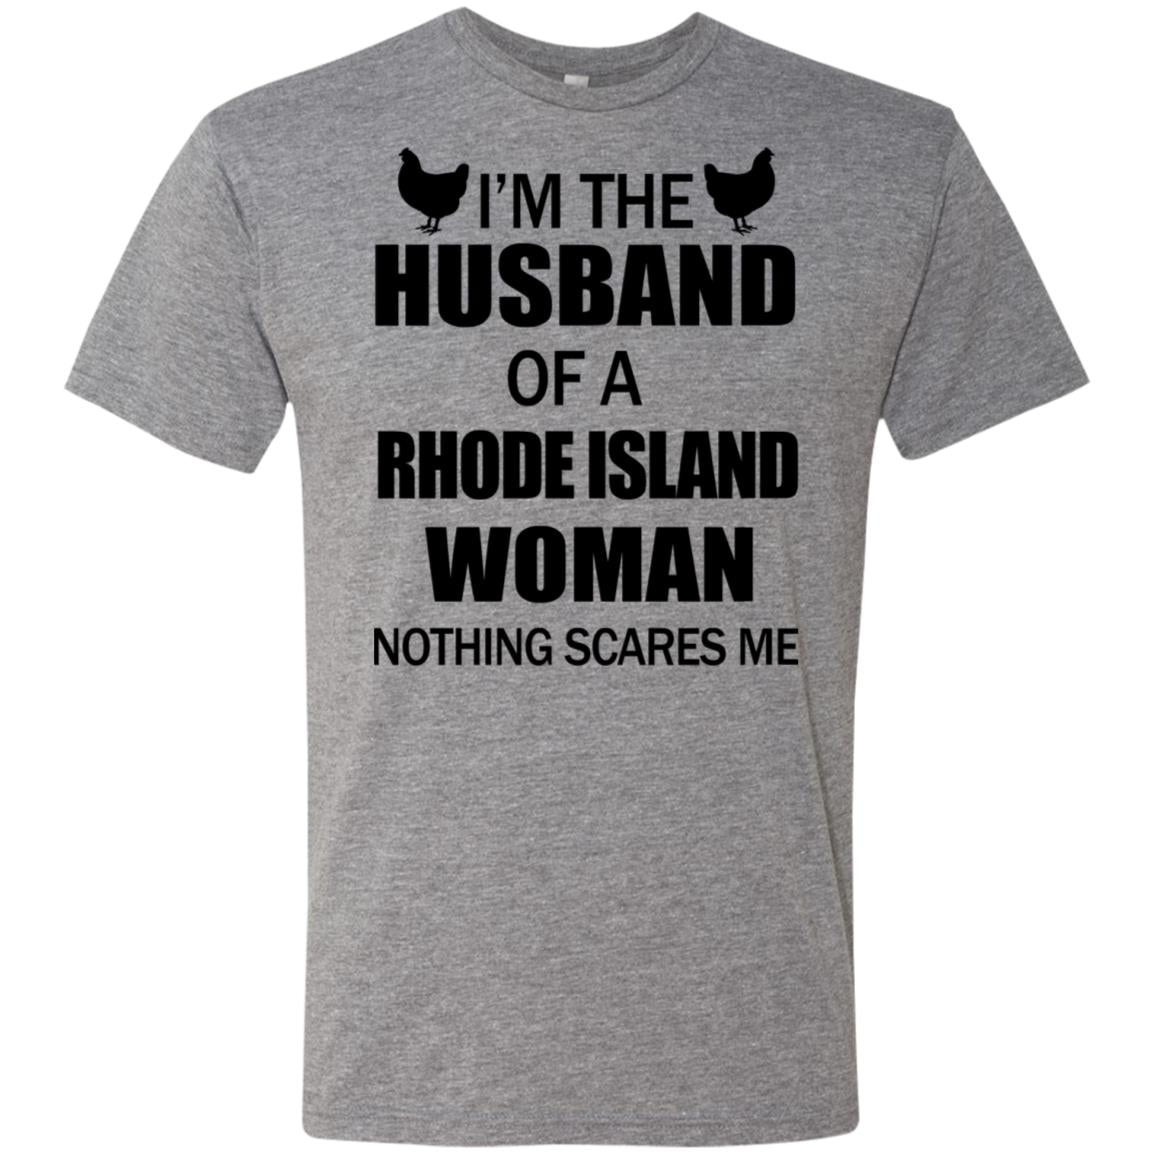 I'm The Husband Of A Rhode Island Woman T-shirt